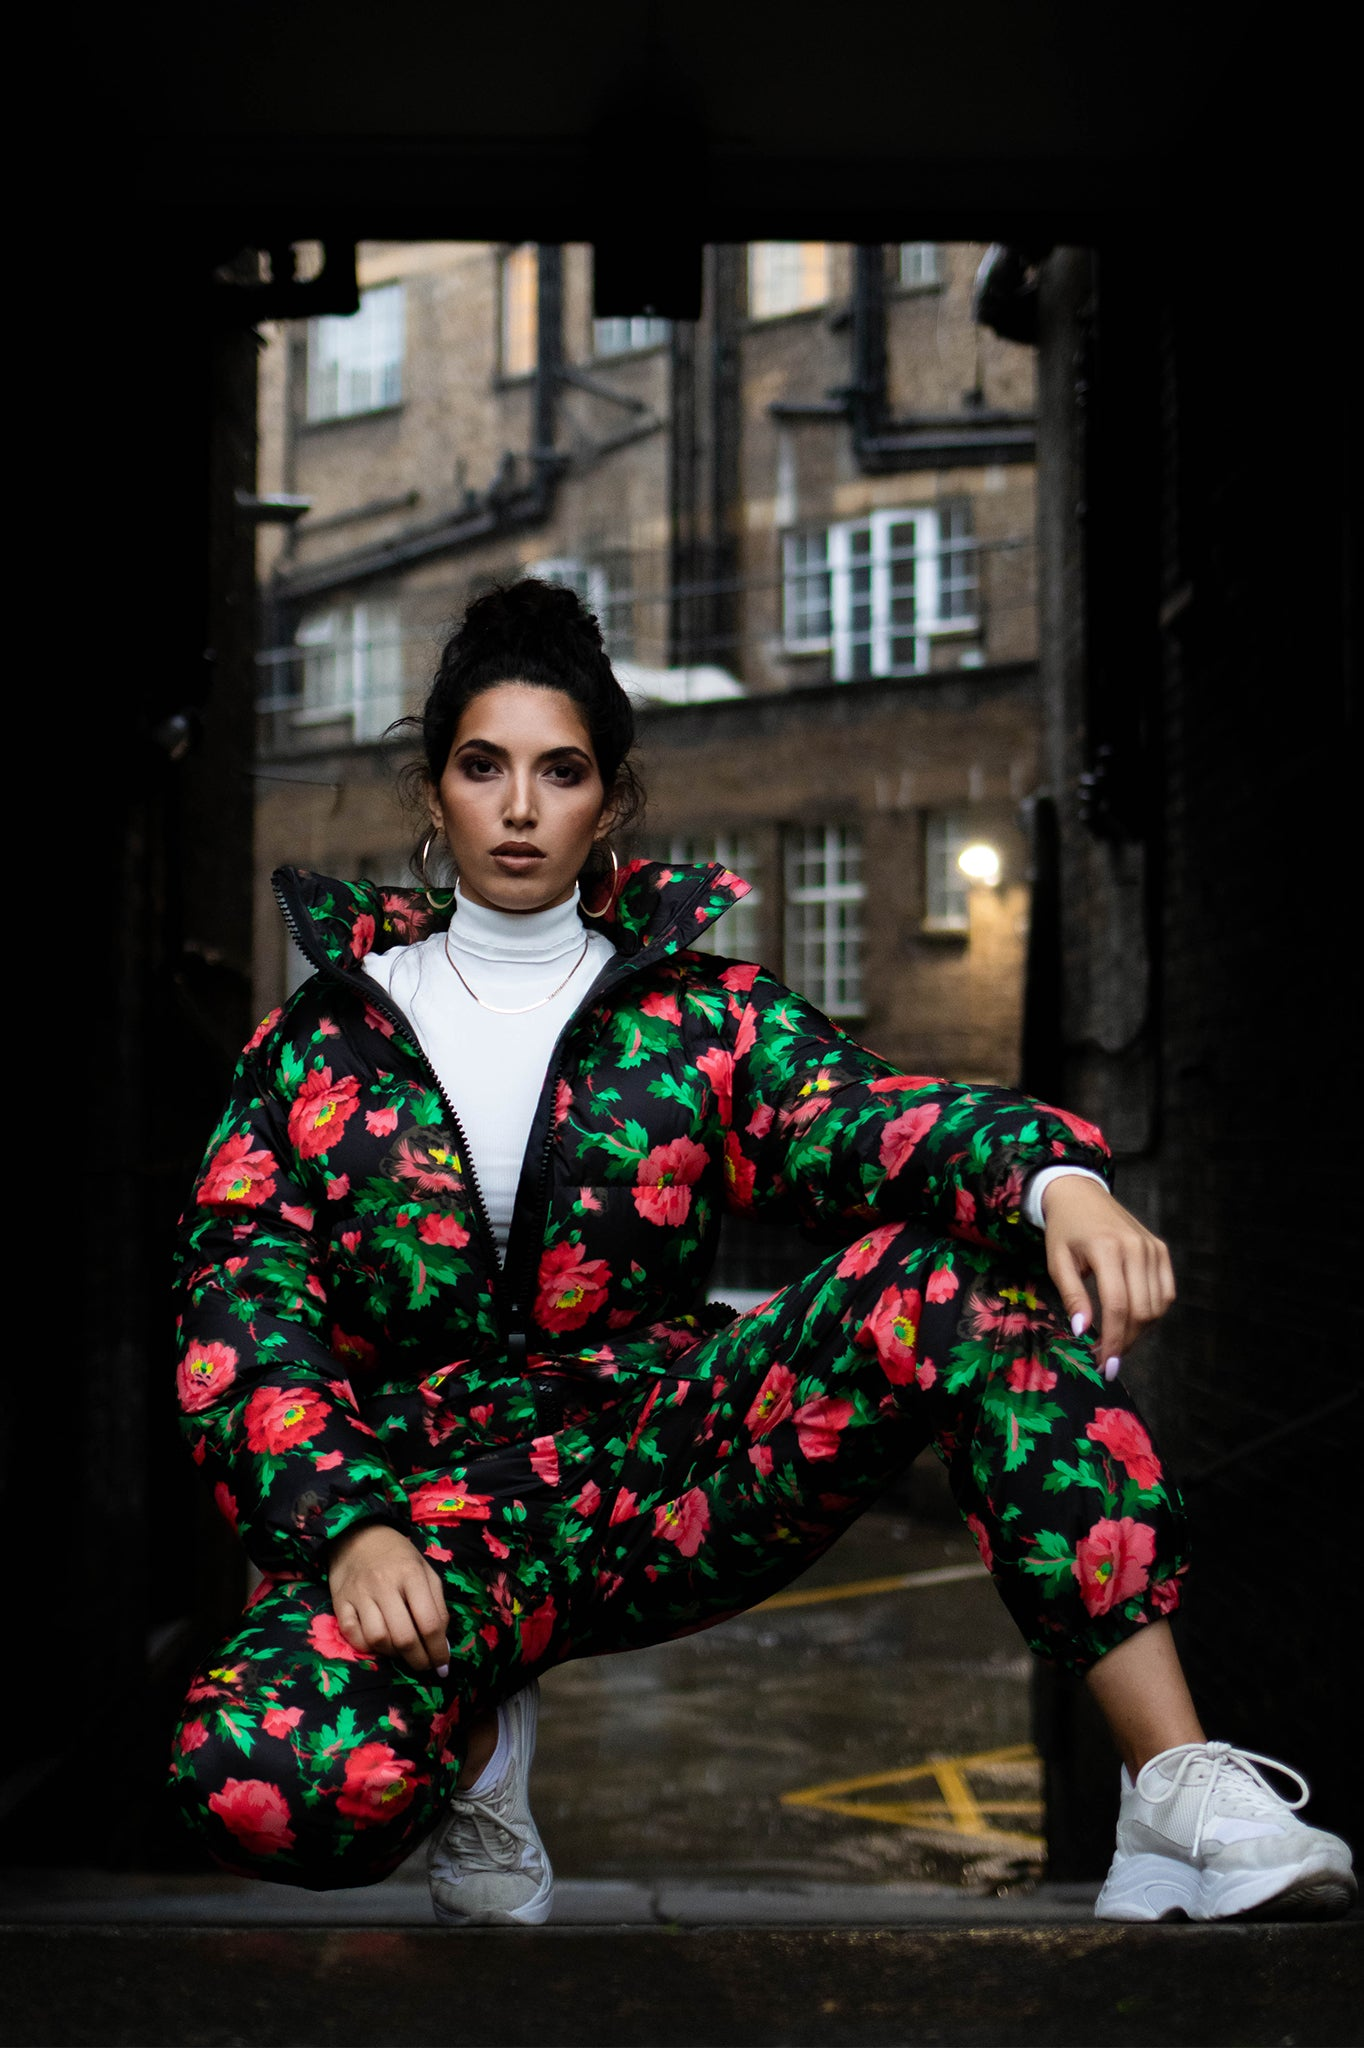 Street Style Fashion of Female model wearing Floral Snow Jump suit